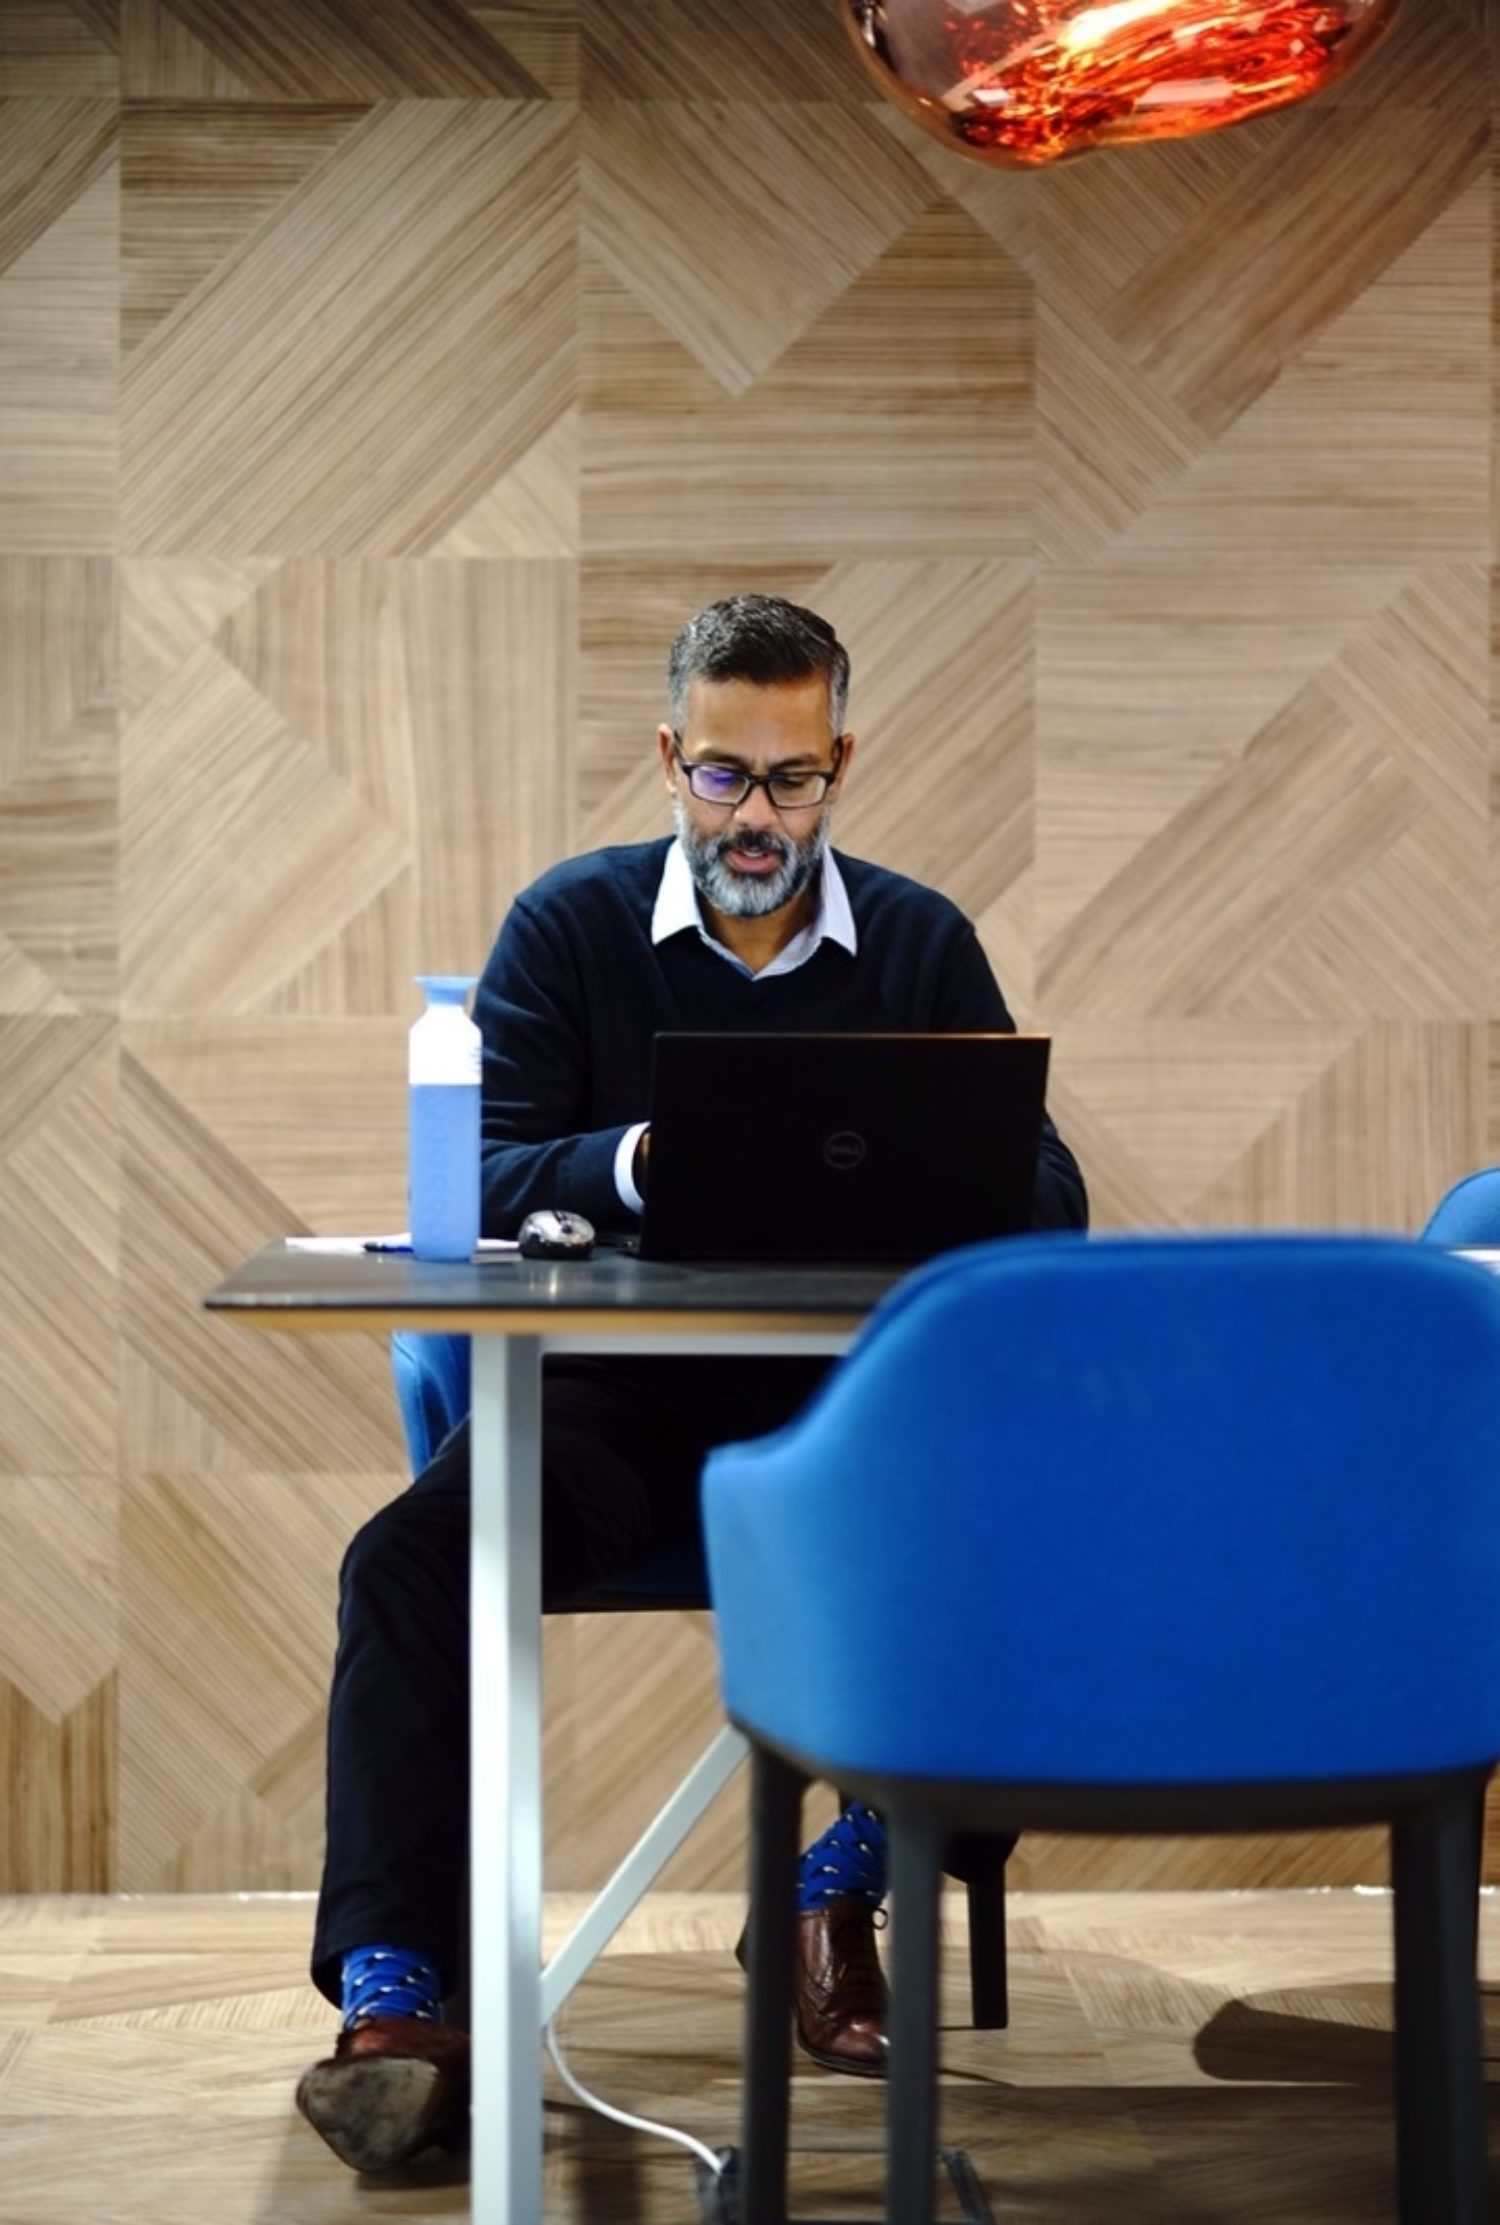 Man working at office desk